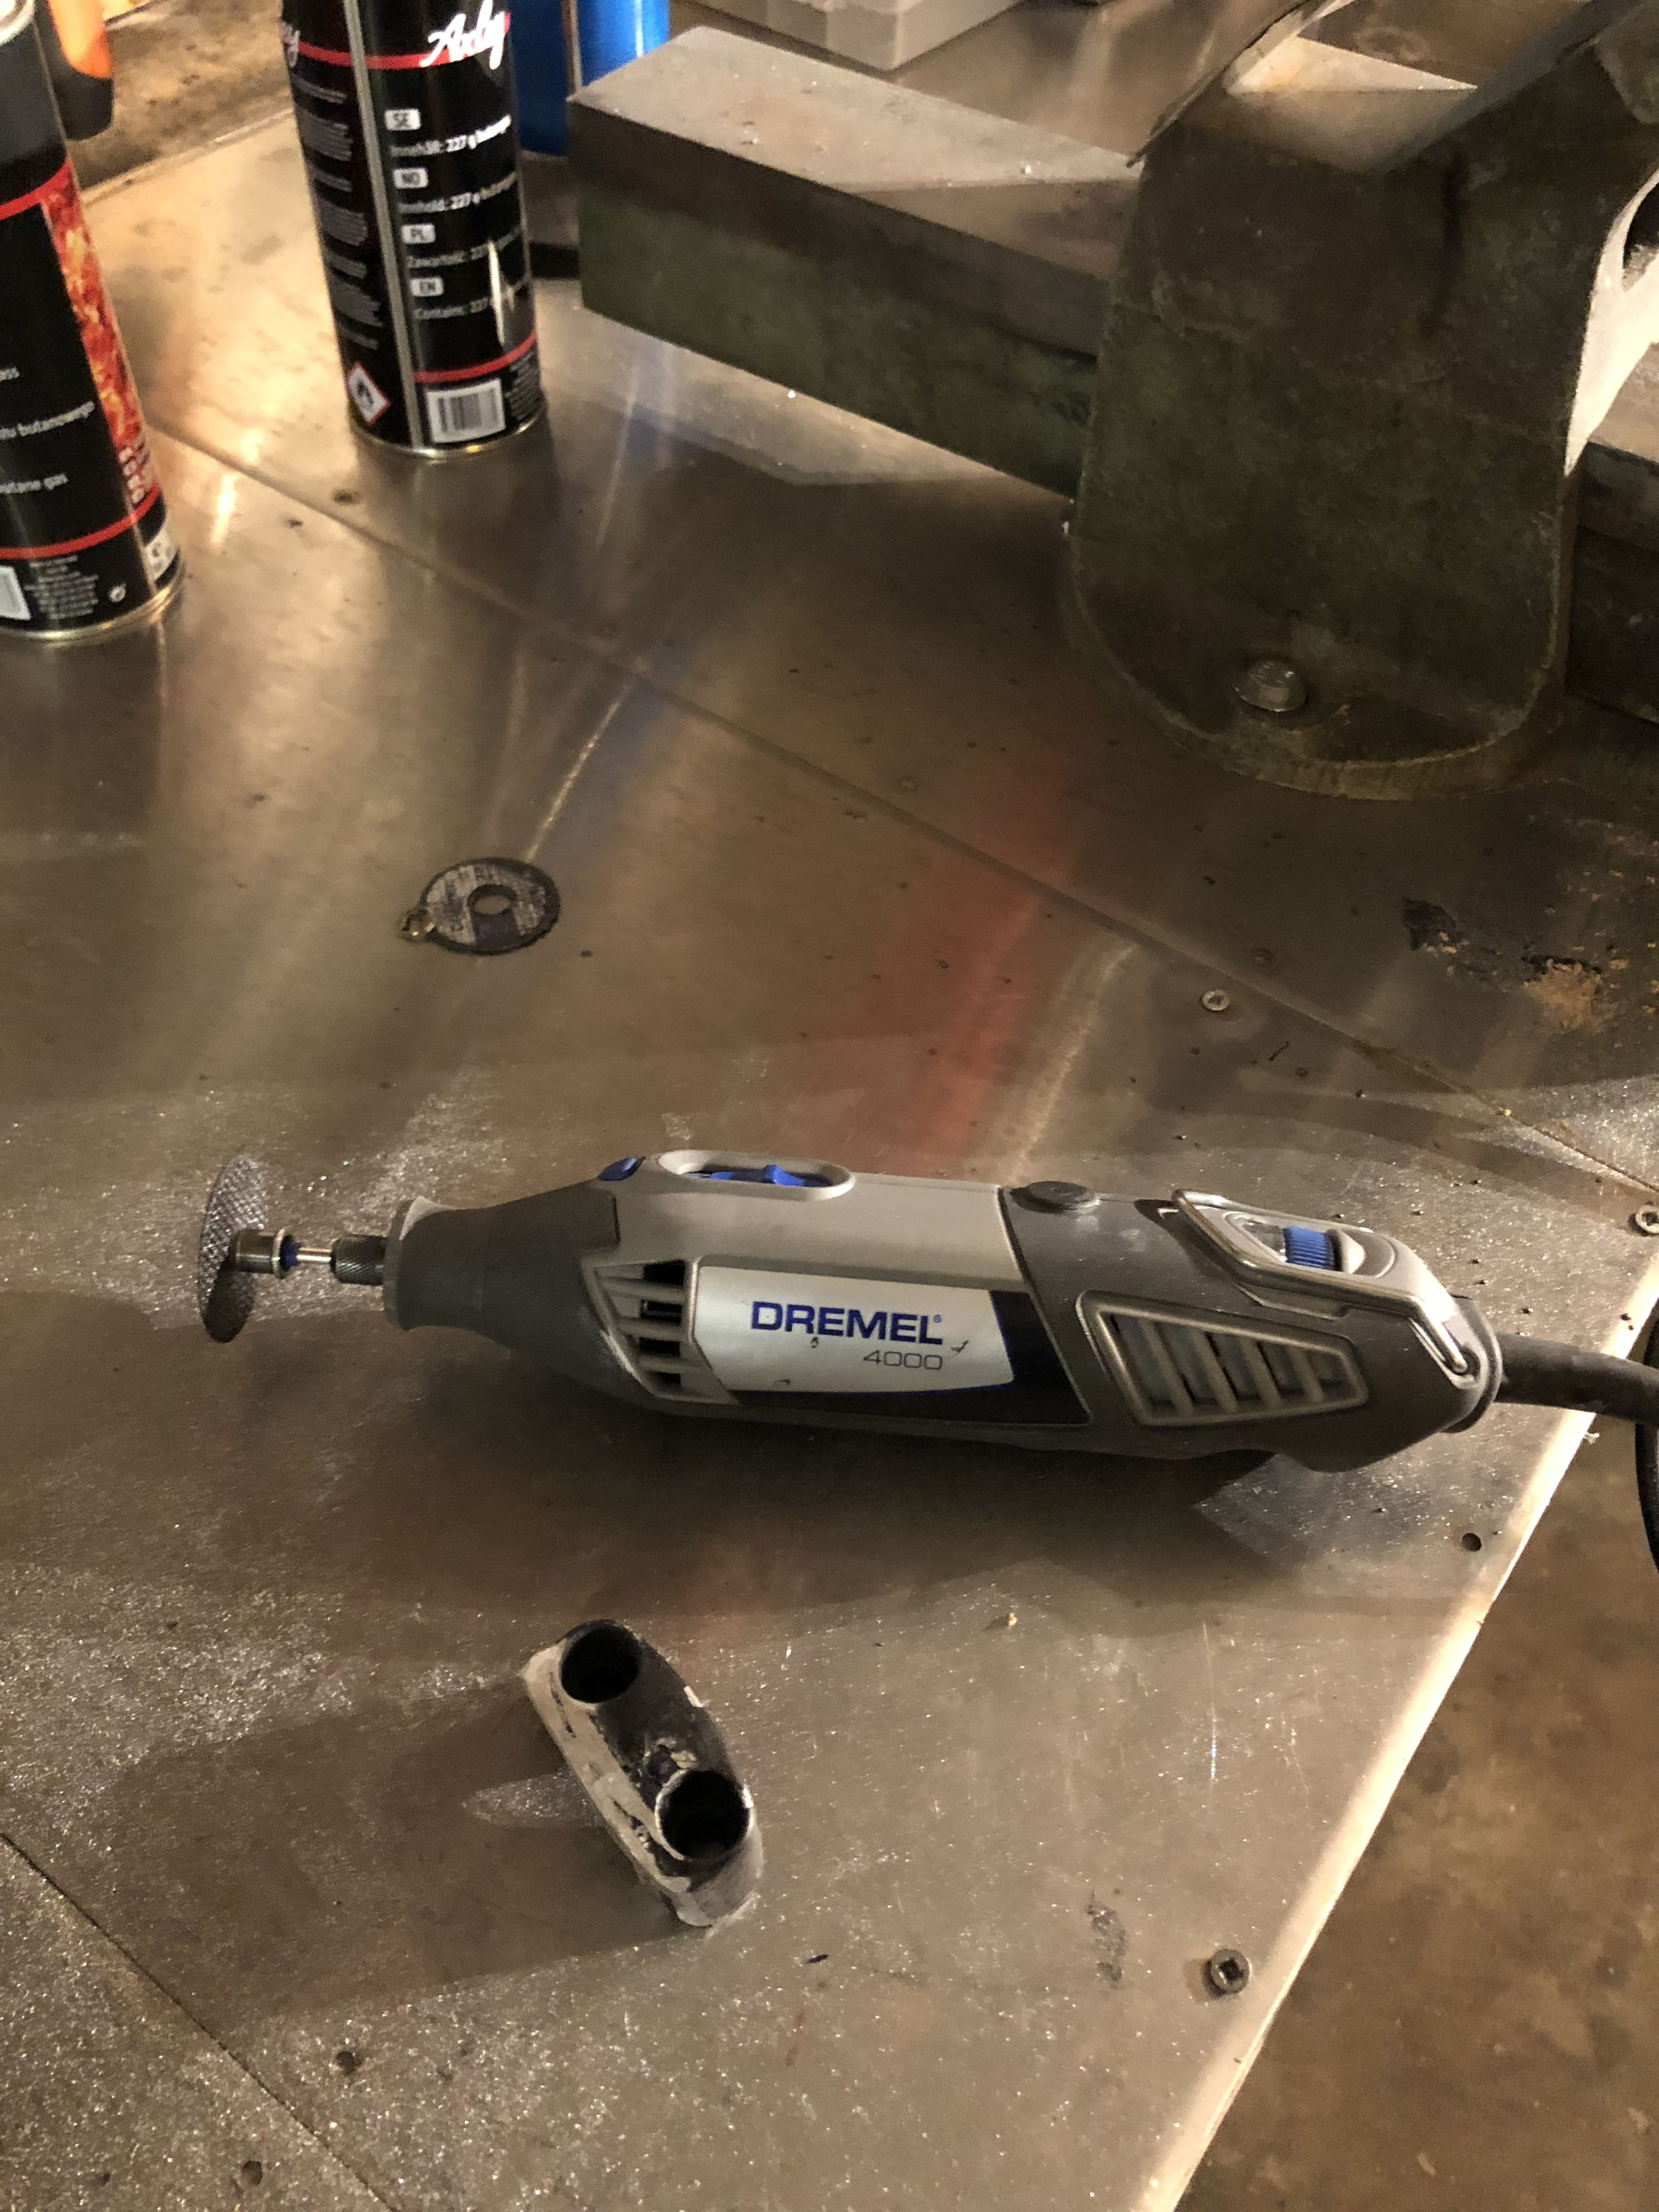 Dremel 4000 amazing tool to clean motorcycle parts with